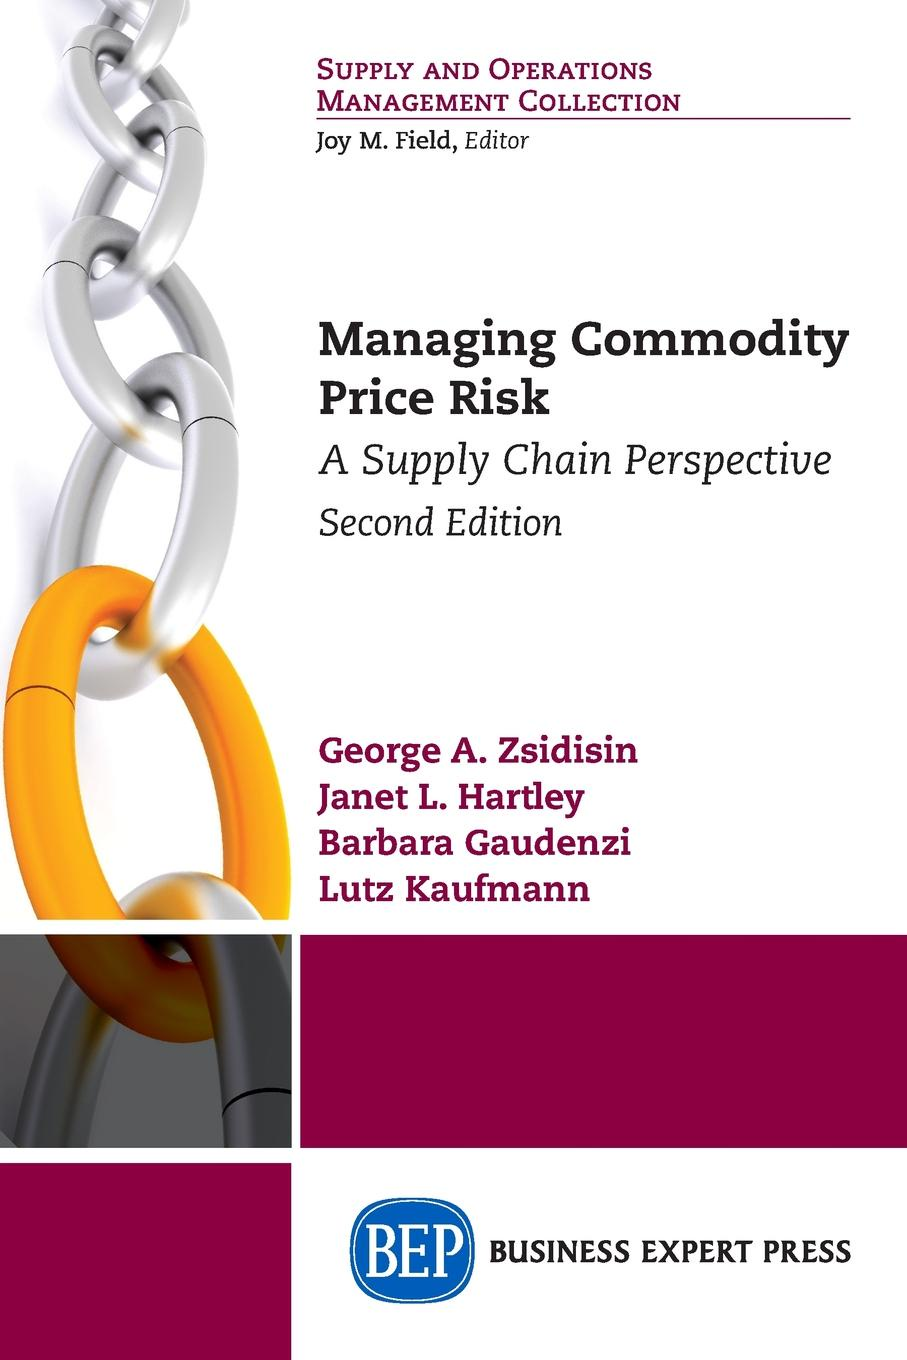 George A. Zsidisin, Janet L. Hartley, Barbara Gaudenzi Managing Commodity Price Risk. A Supply Chain Perspective, Second Edition belay belete anjullo and ayele taye the determinants of domestic price volatility for cereals in ethiopia